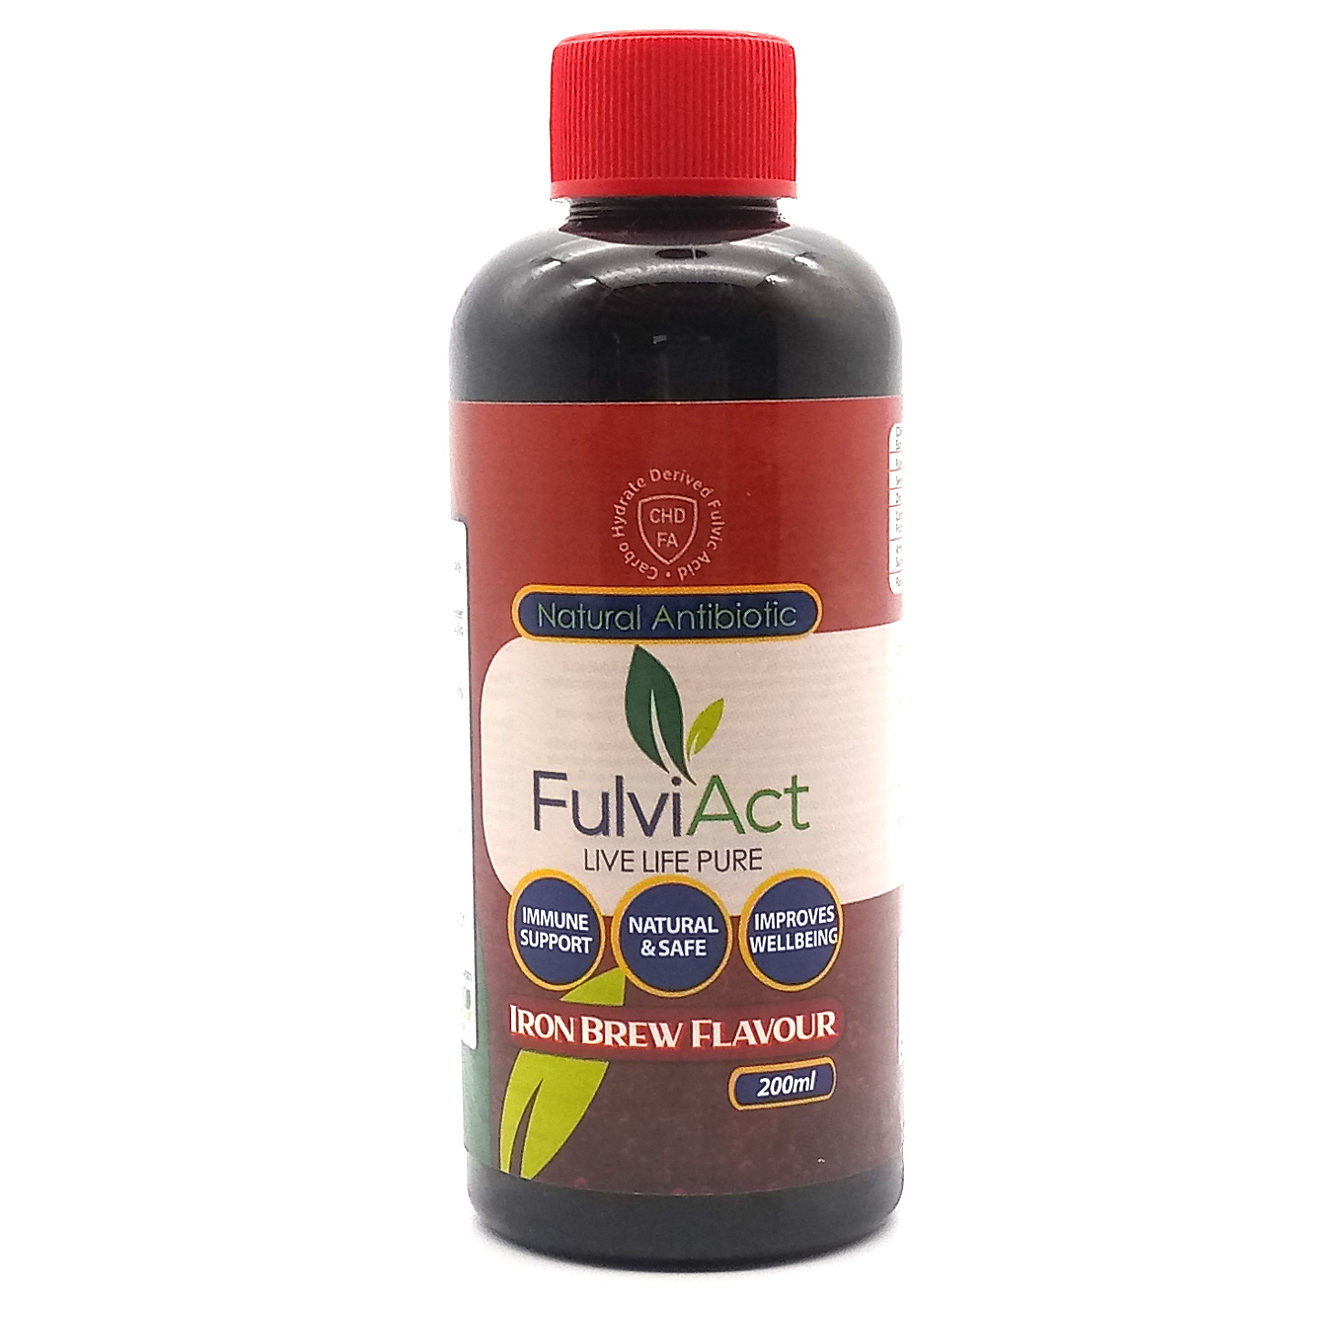 FulviAct Natural Antibiotic